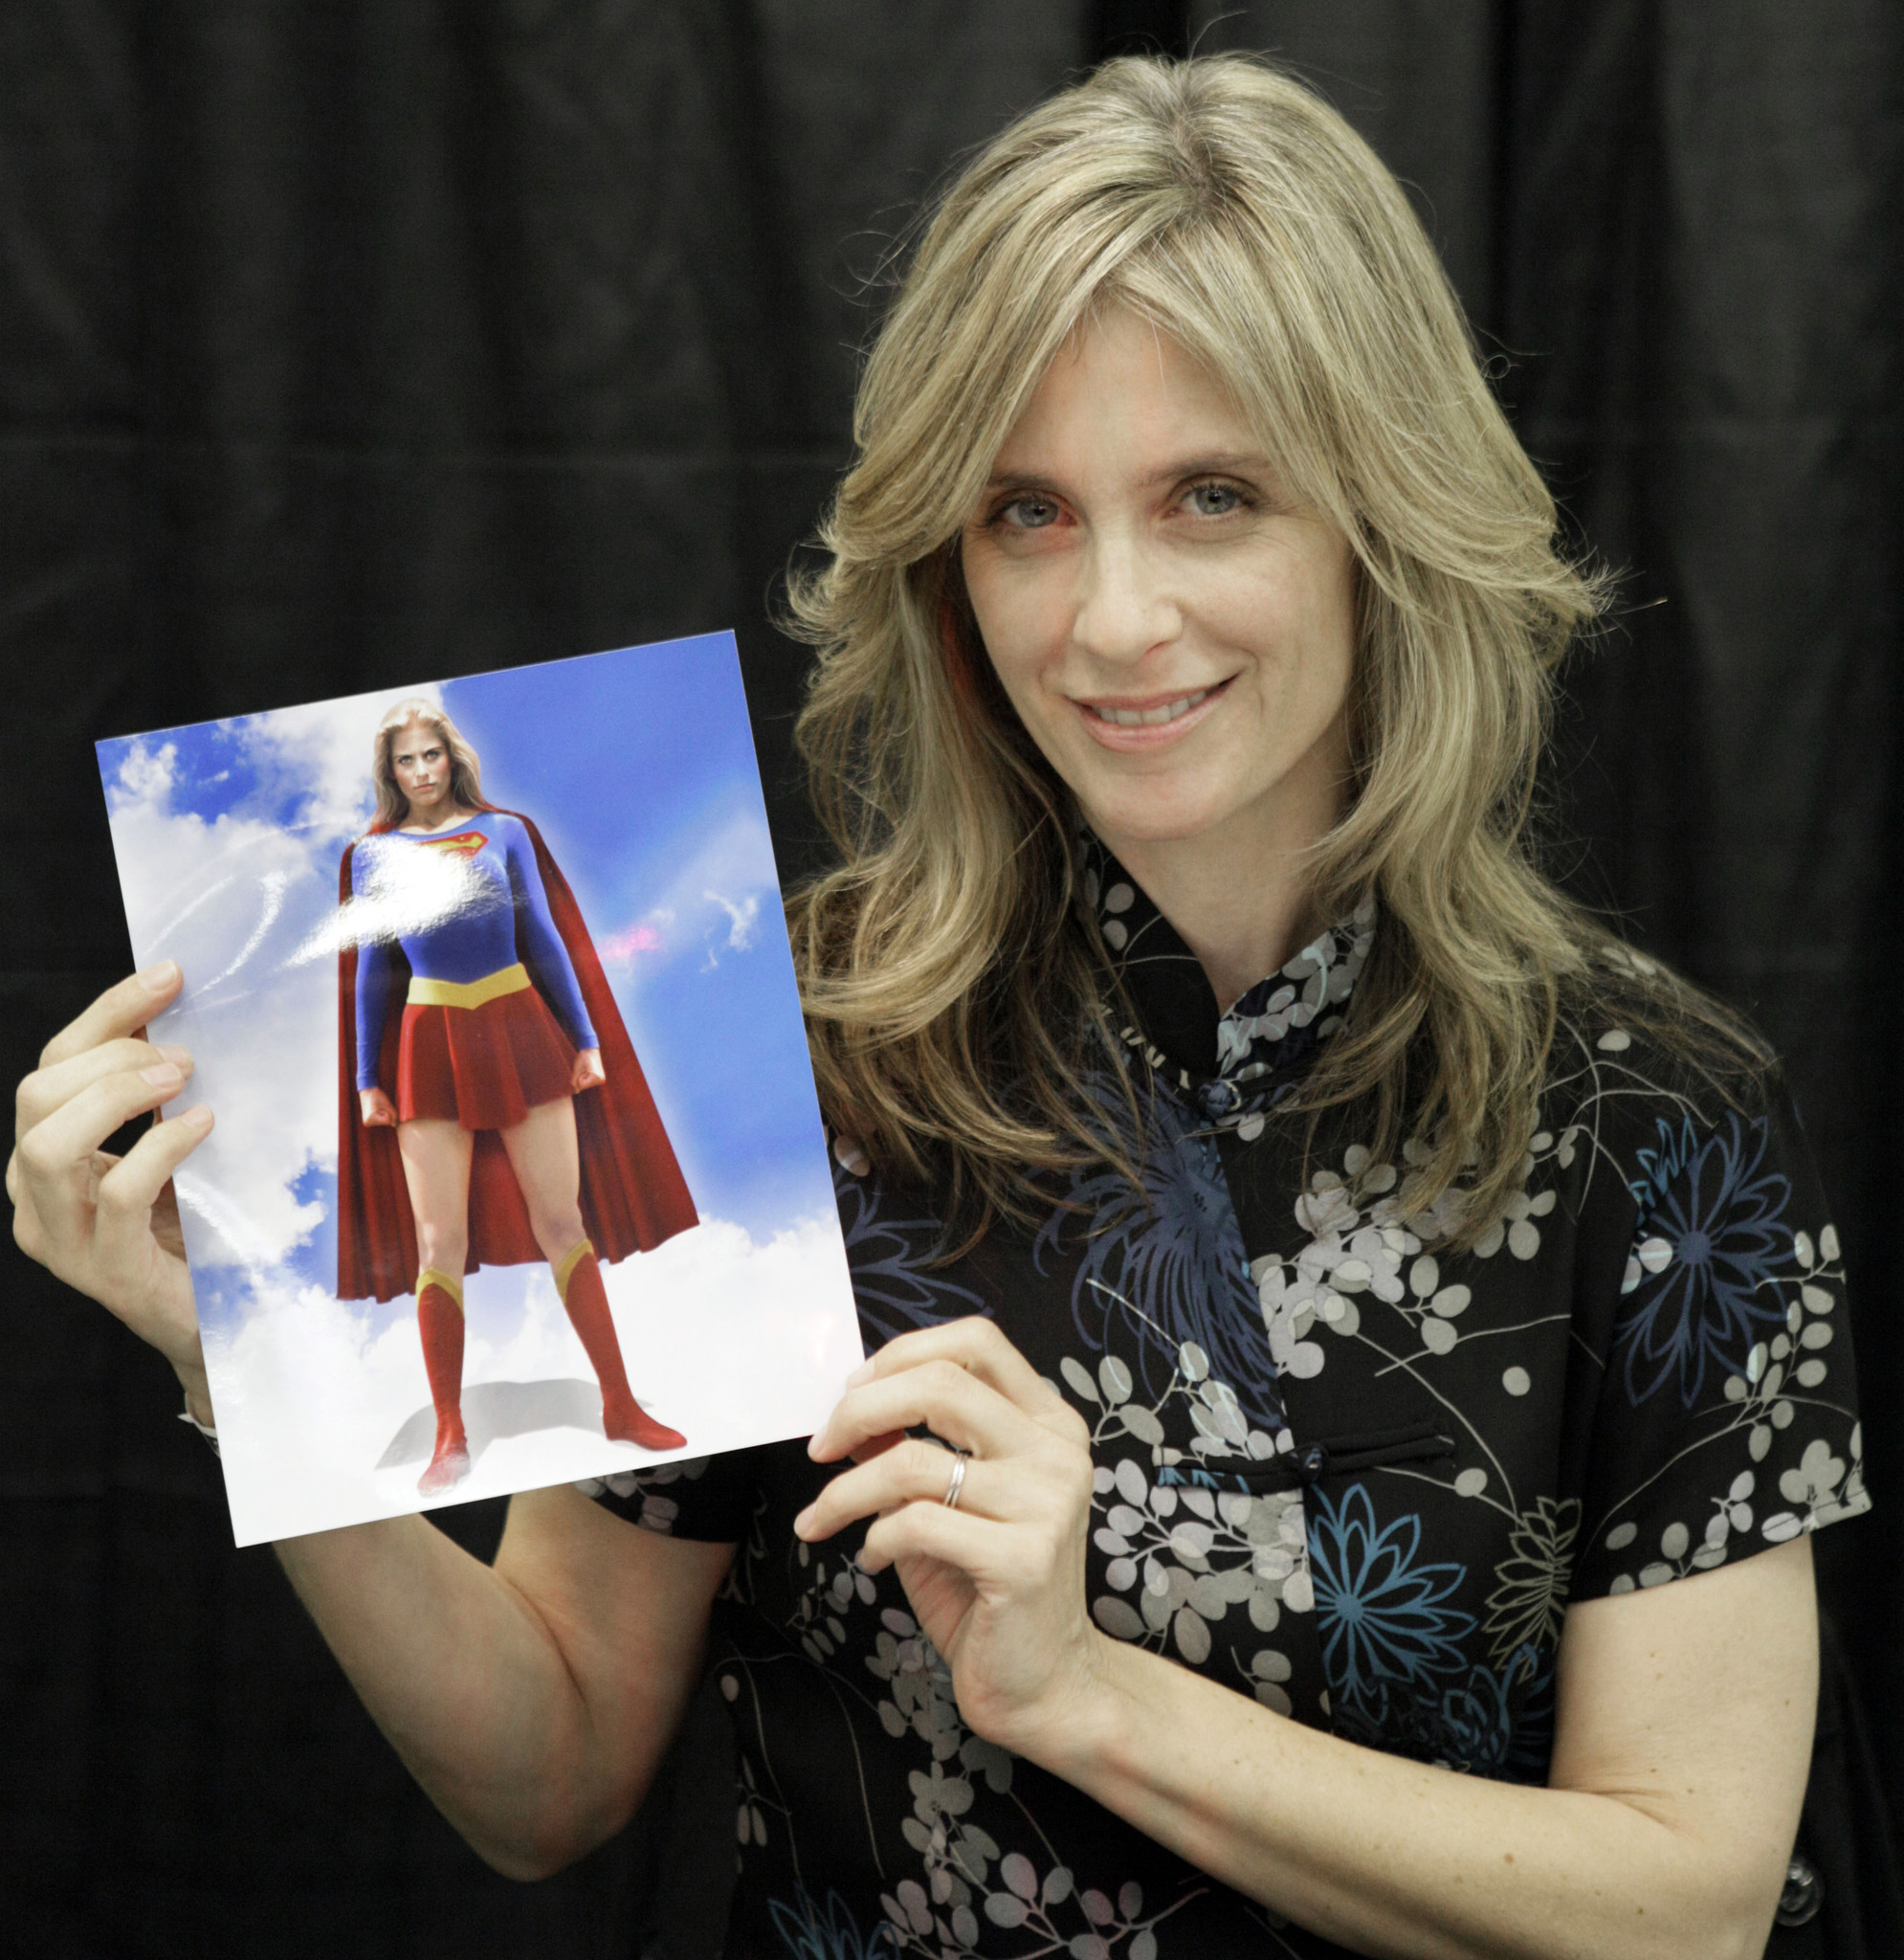 Helen Slater nudes (67 foto and video), Pussy, Is a cute, Boobs, in bikini 2019